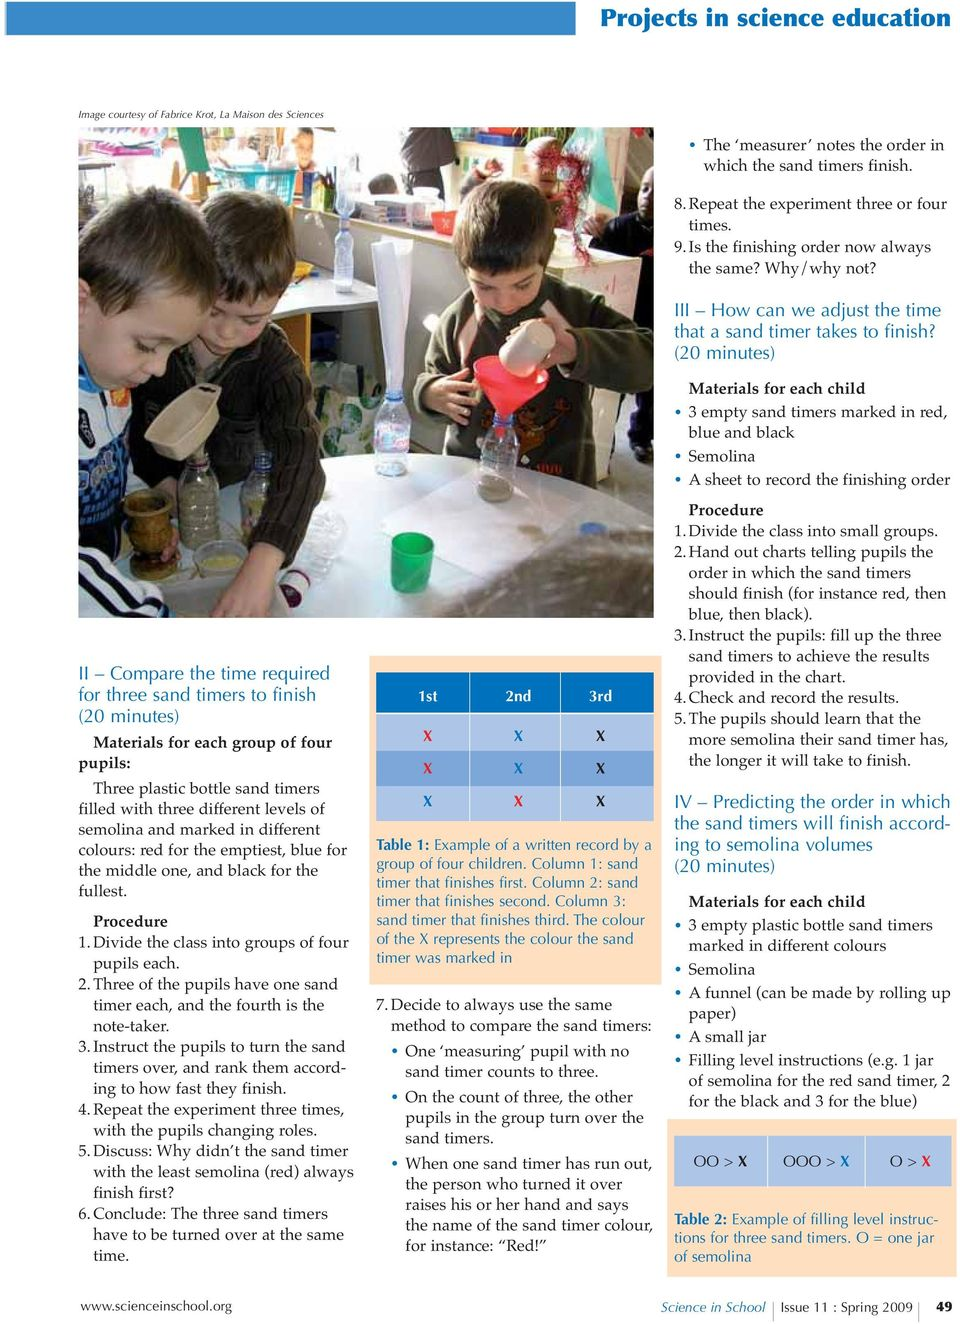 II Compare the time required for three sand timers to finish (20 minutes) Materials for each group of four pupils: Three plastic bottle sand timers filled with three different levels of semolina and